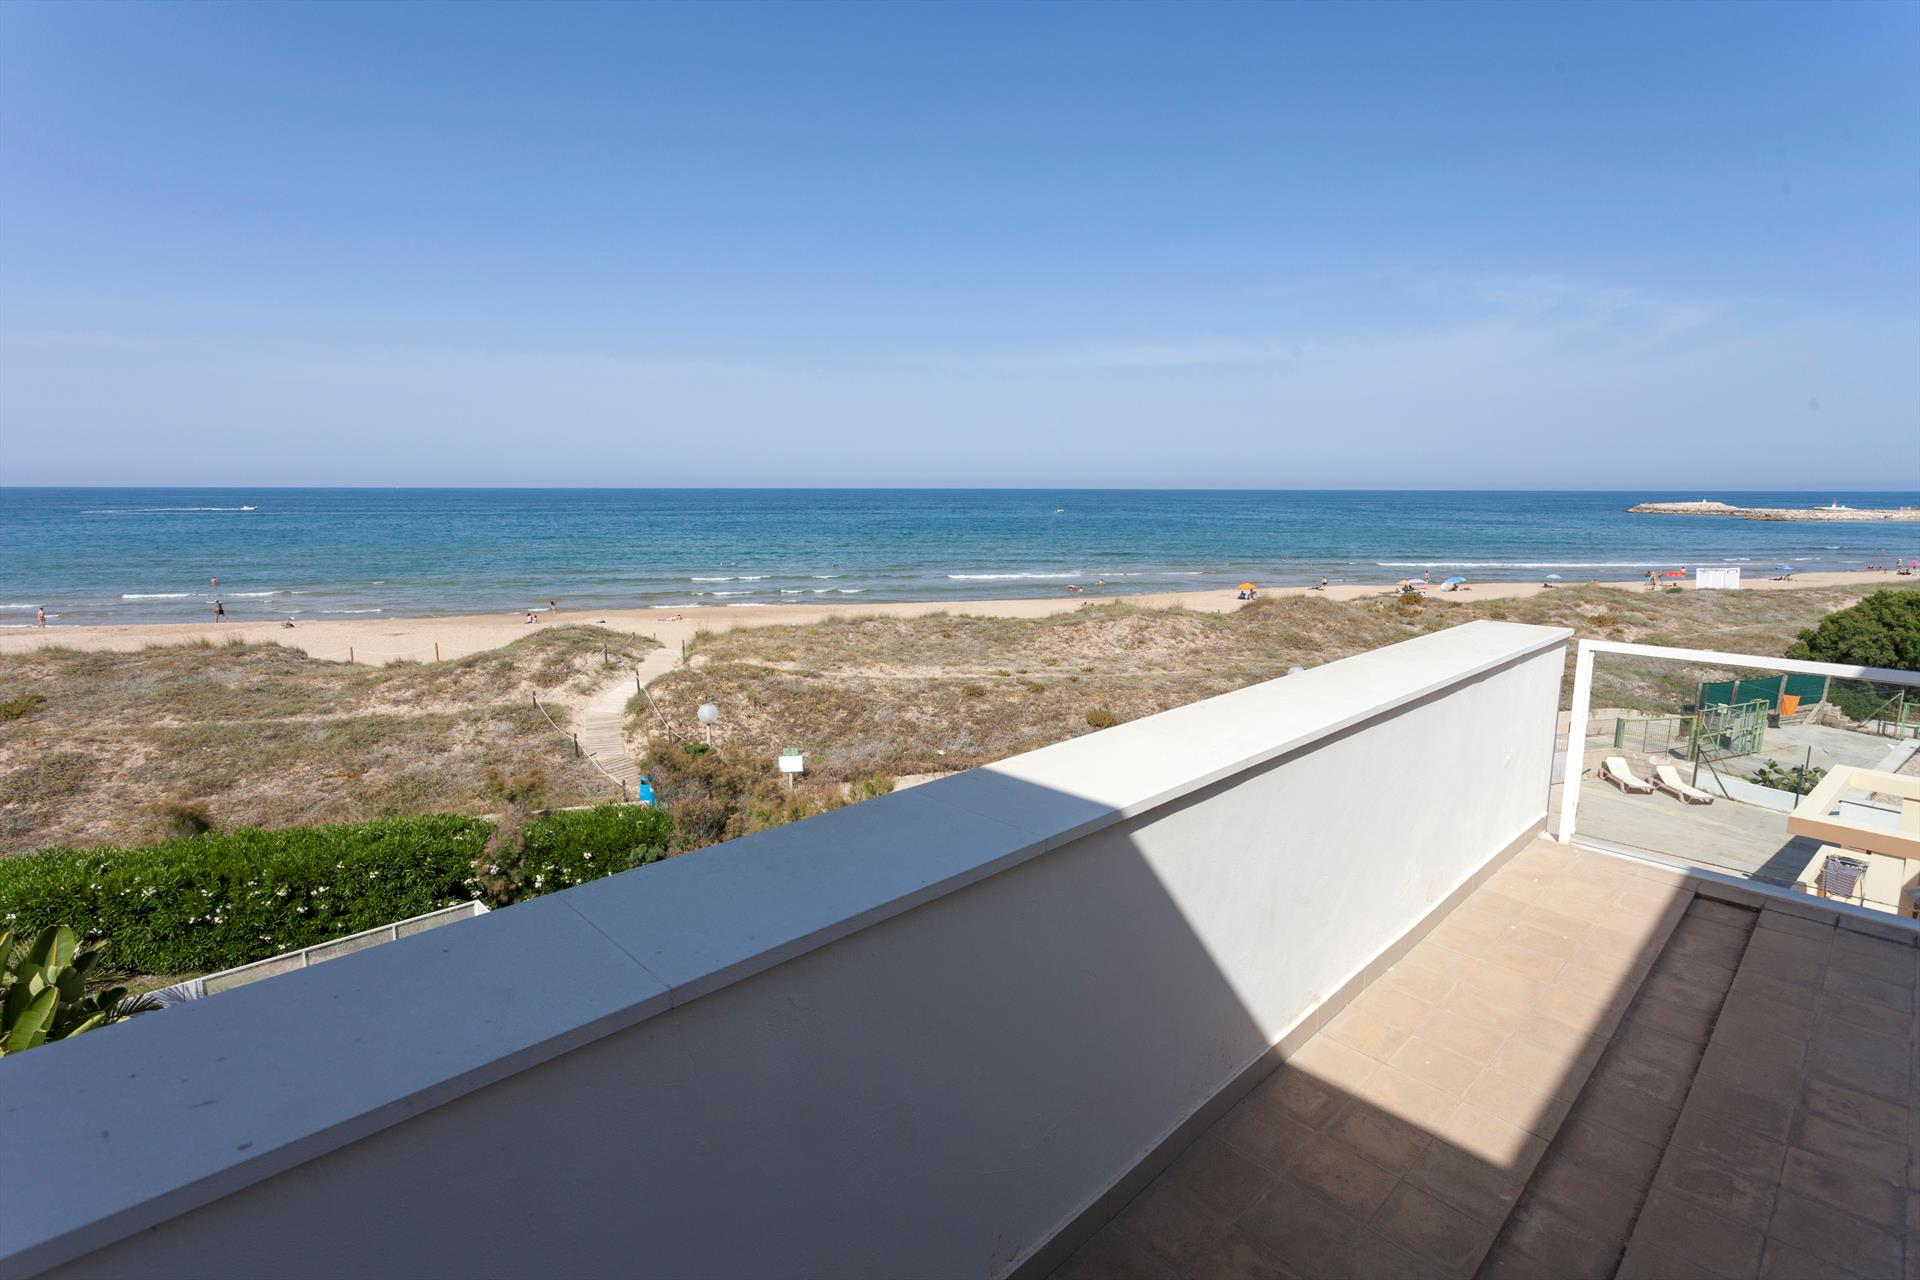 Anabel 4,Modern and comfortable apartment in Oliva, on the Costa Blanca, Spain for 4 persons...